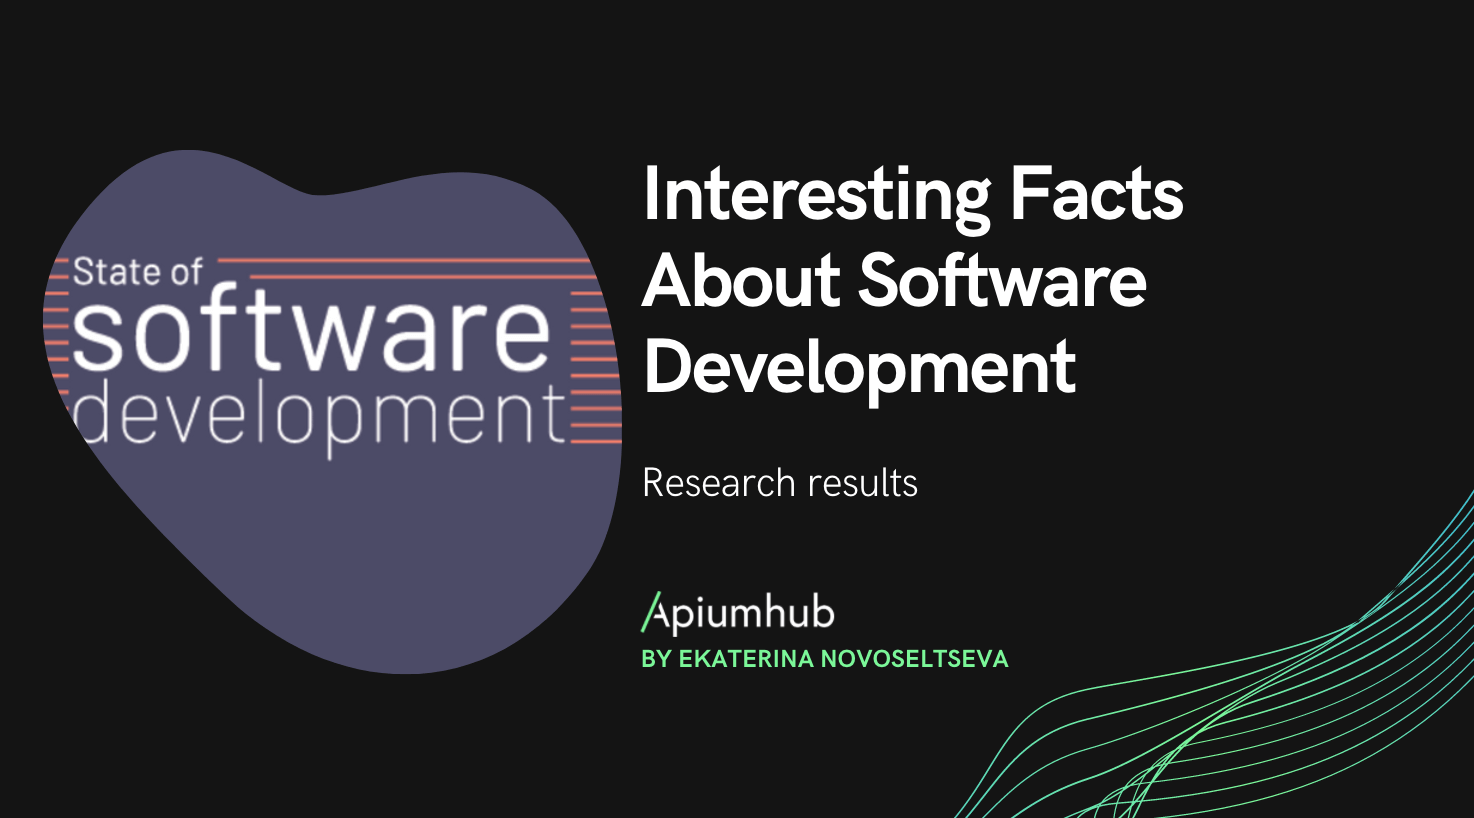 Facts About Software Development